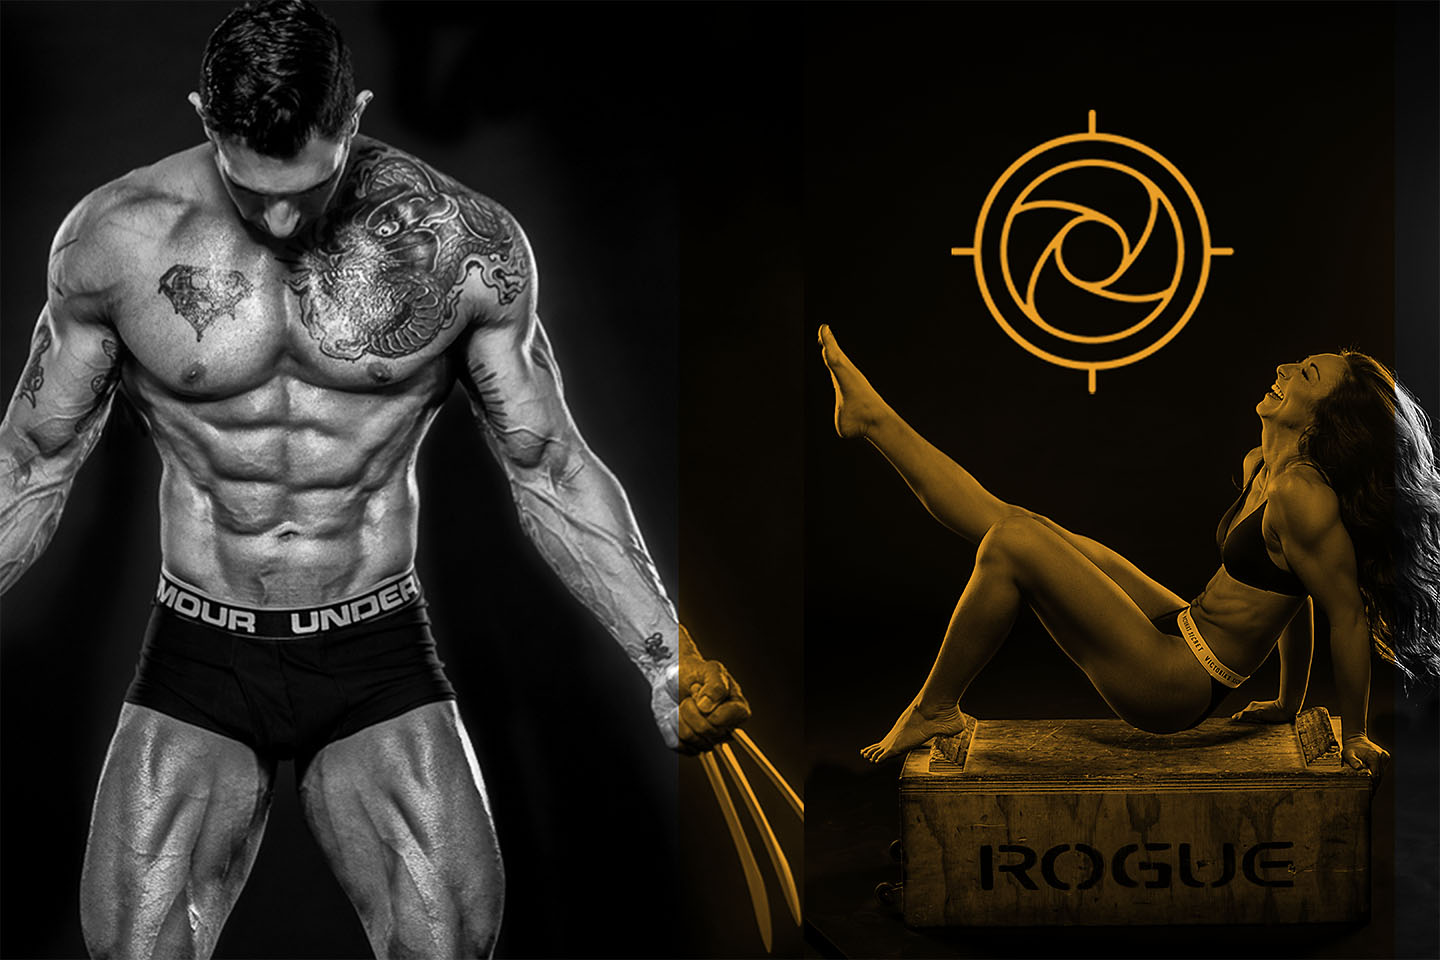 Naked photos for Stark personal fitness campaign in Orange County